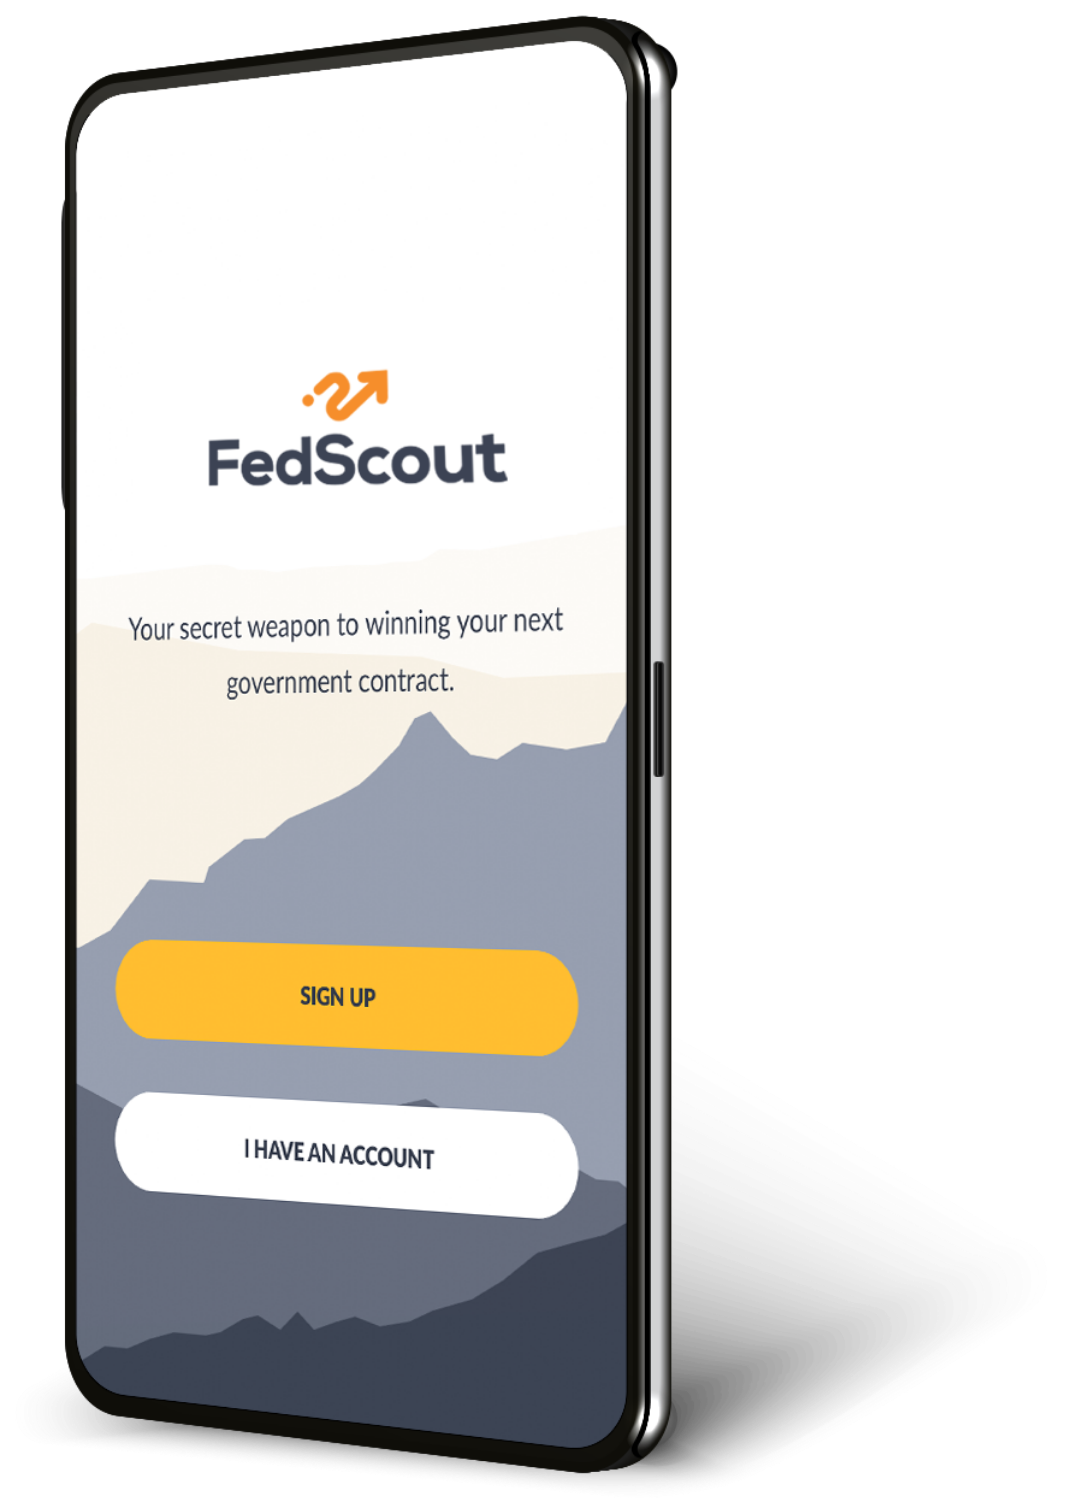 Sign up for FedScout